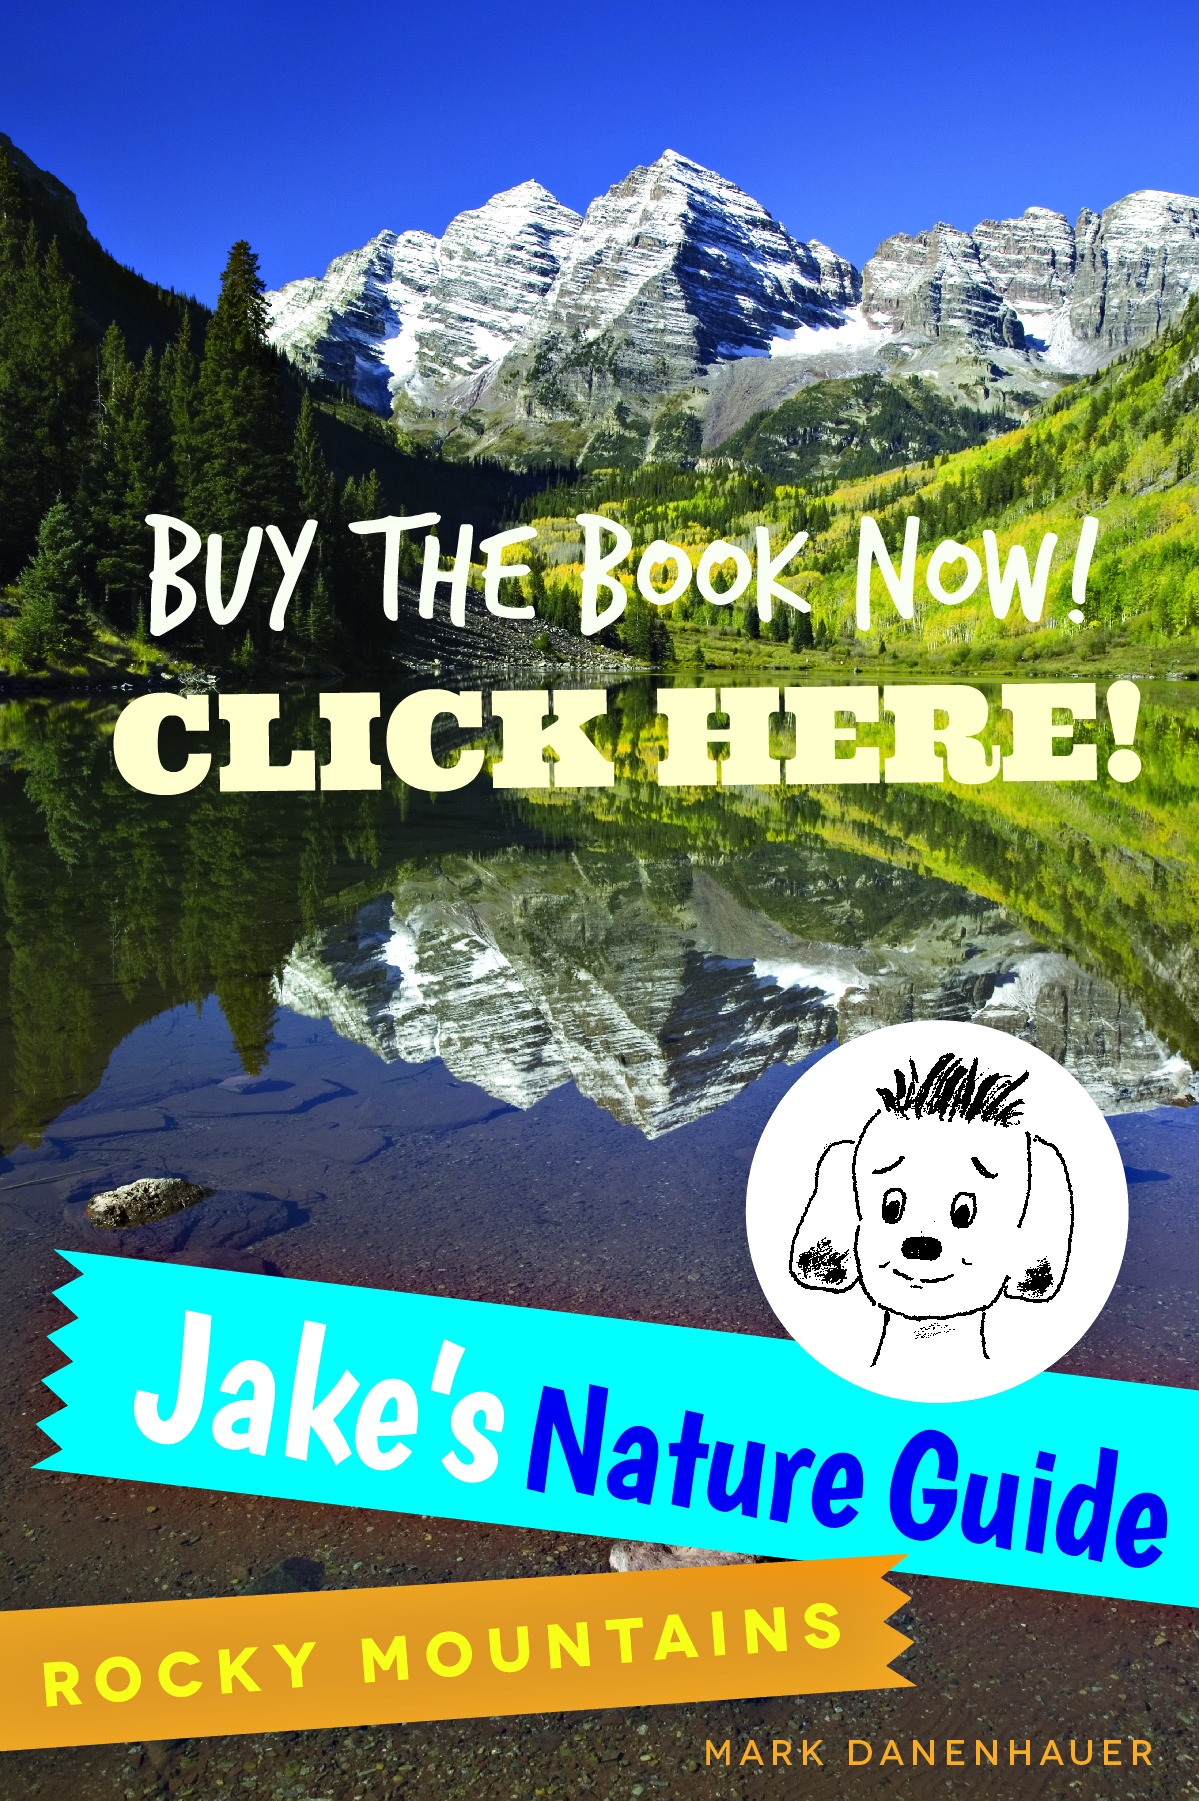 Jakes Nature Guide: Rocky Mountains